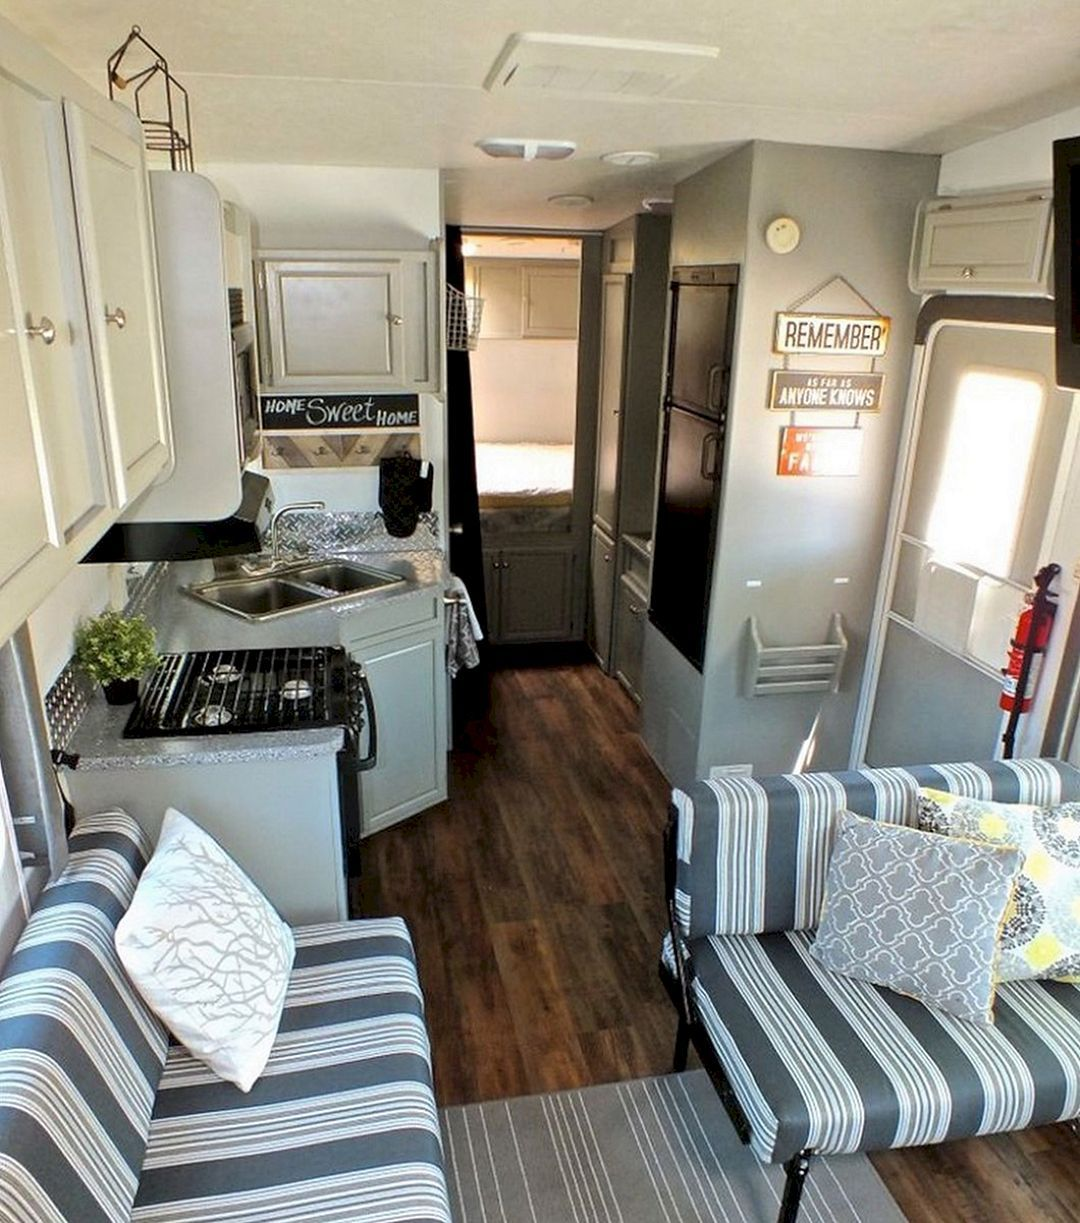 Remodeling Ideas: Best Camper Van Hacks, Makeover, Remodel And Renovation